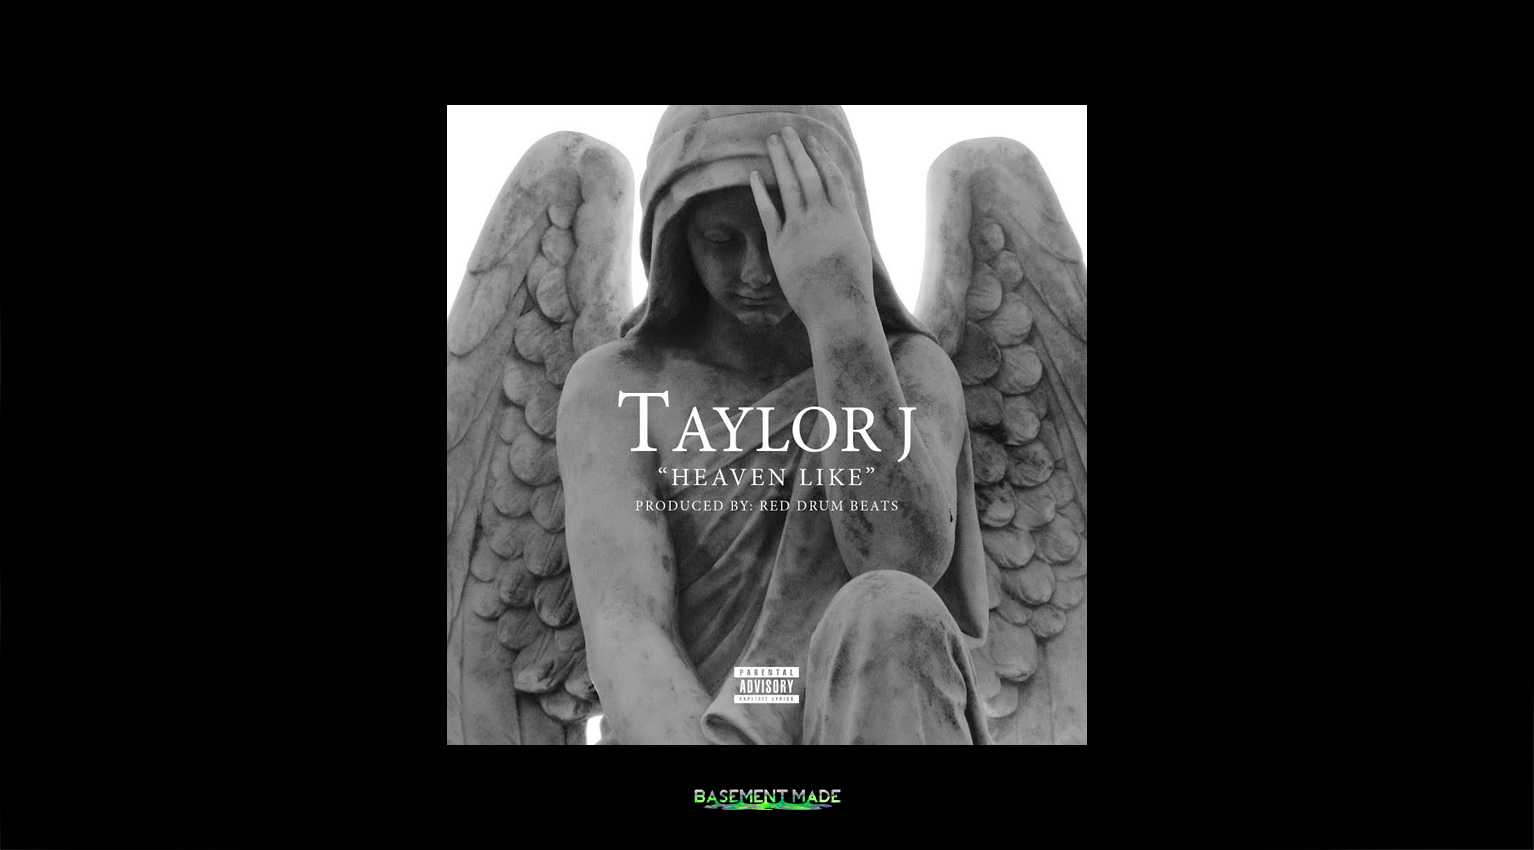 Taylor-J-Heaven-Like-Prod.-Red-Drum-Beats-cover-art-Basement-Made